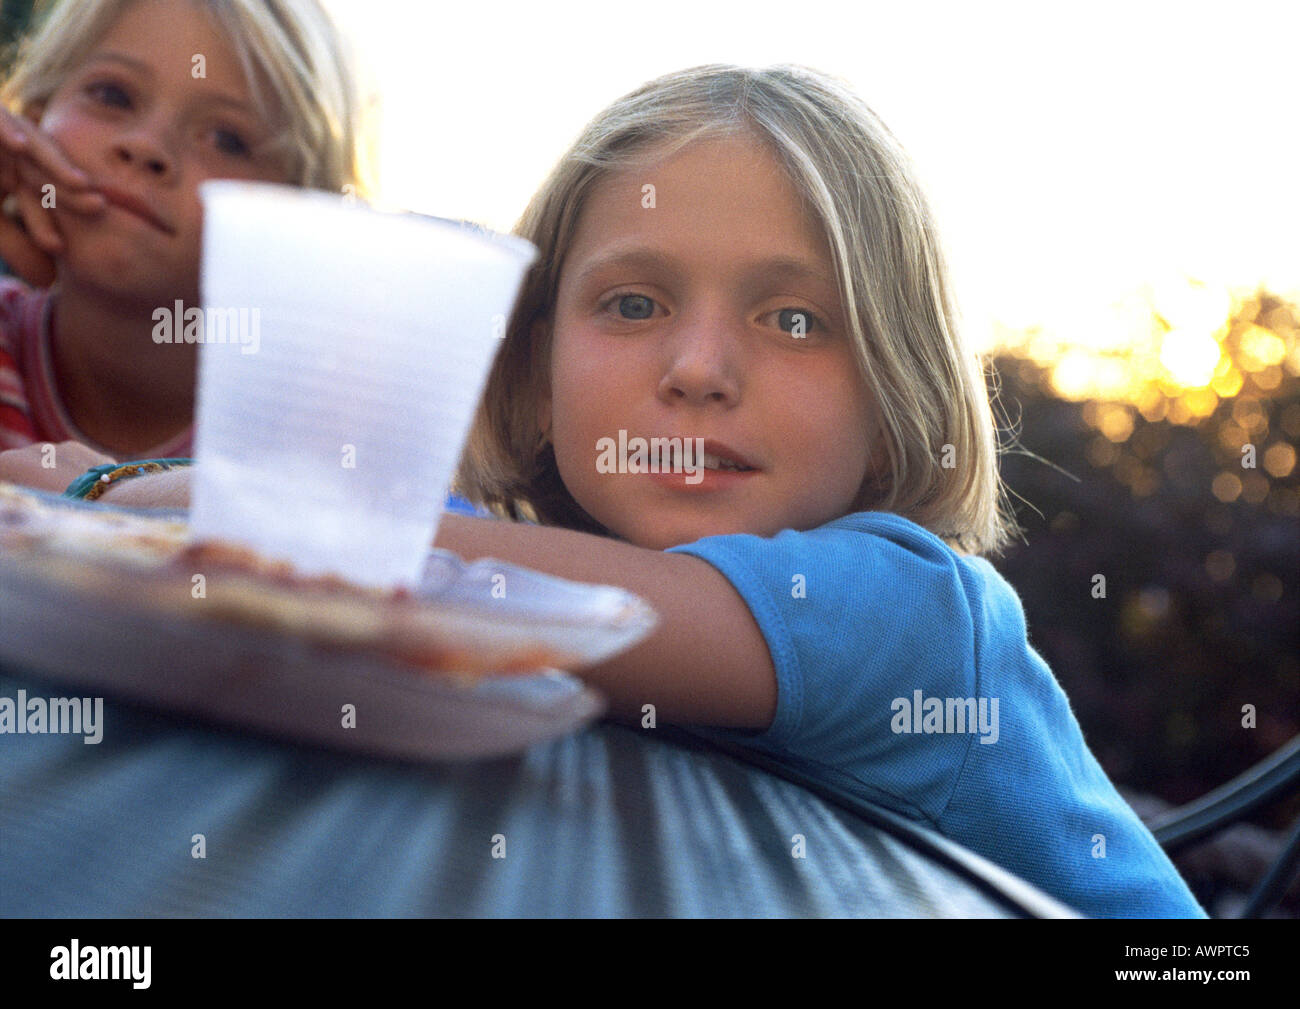 Two Girls Sitting At Table Plastic Cup In Foreground